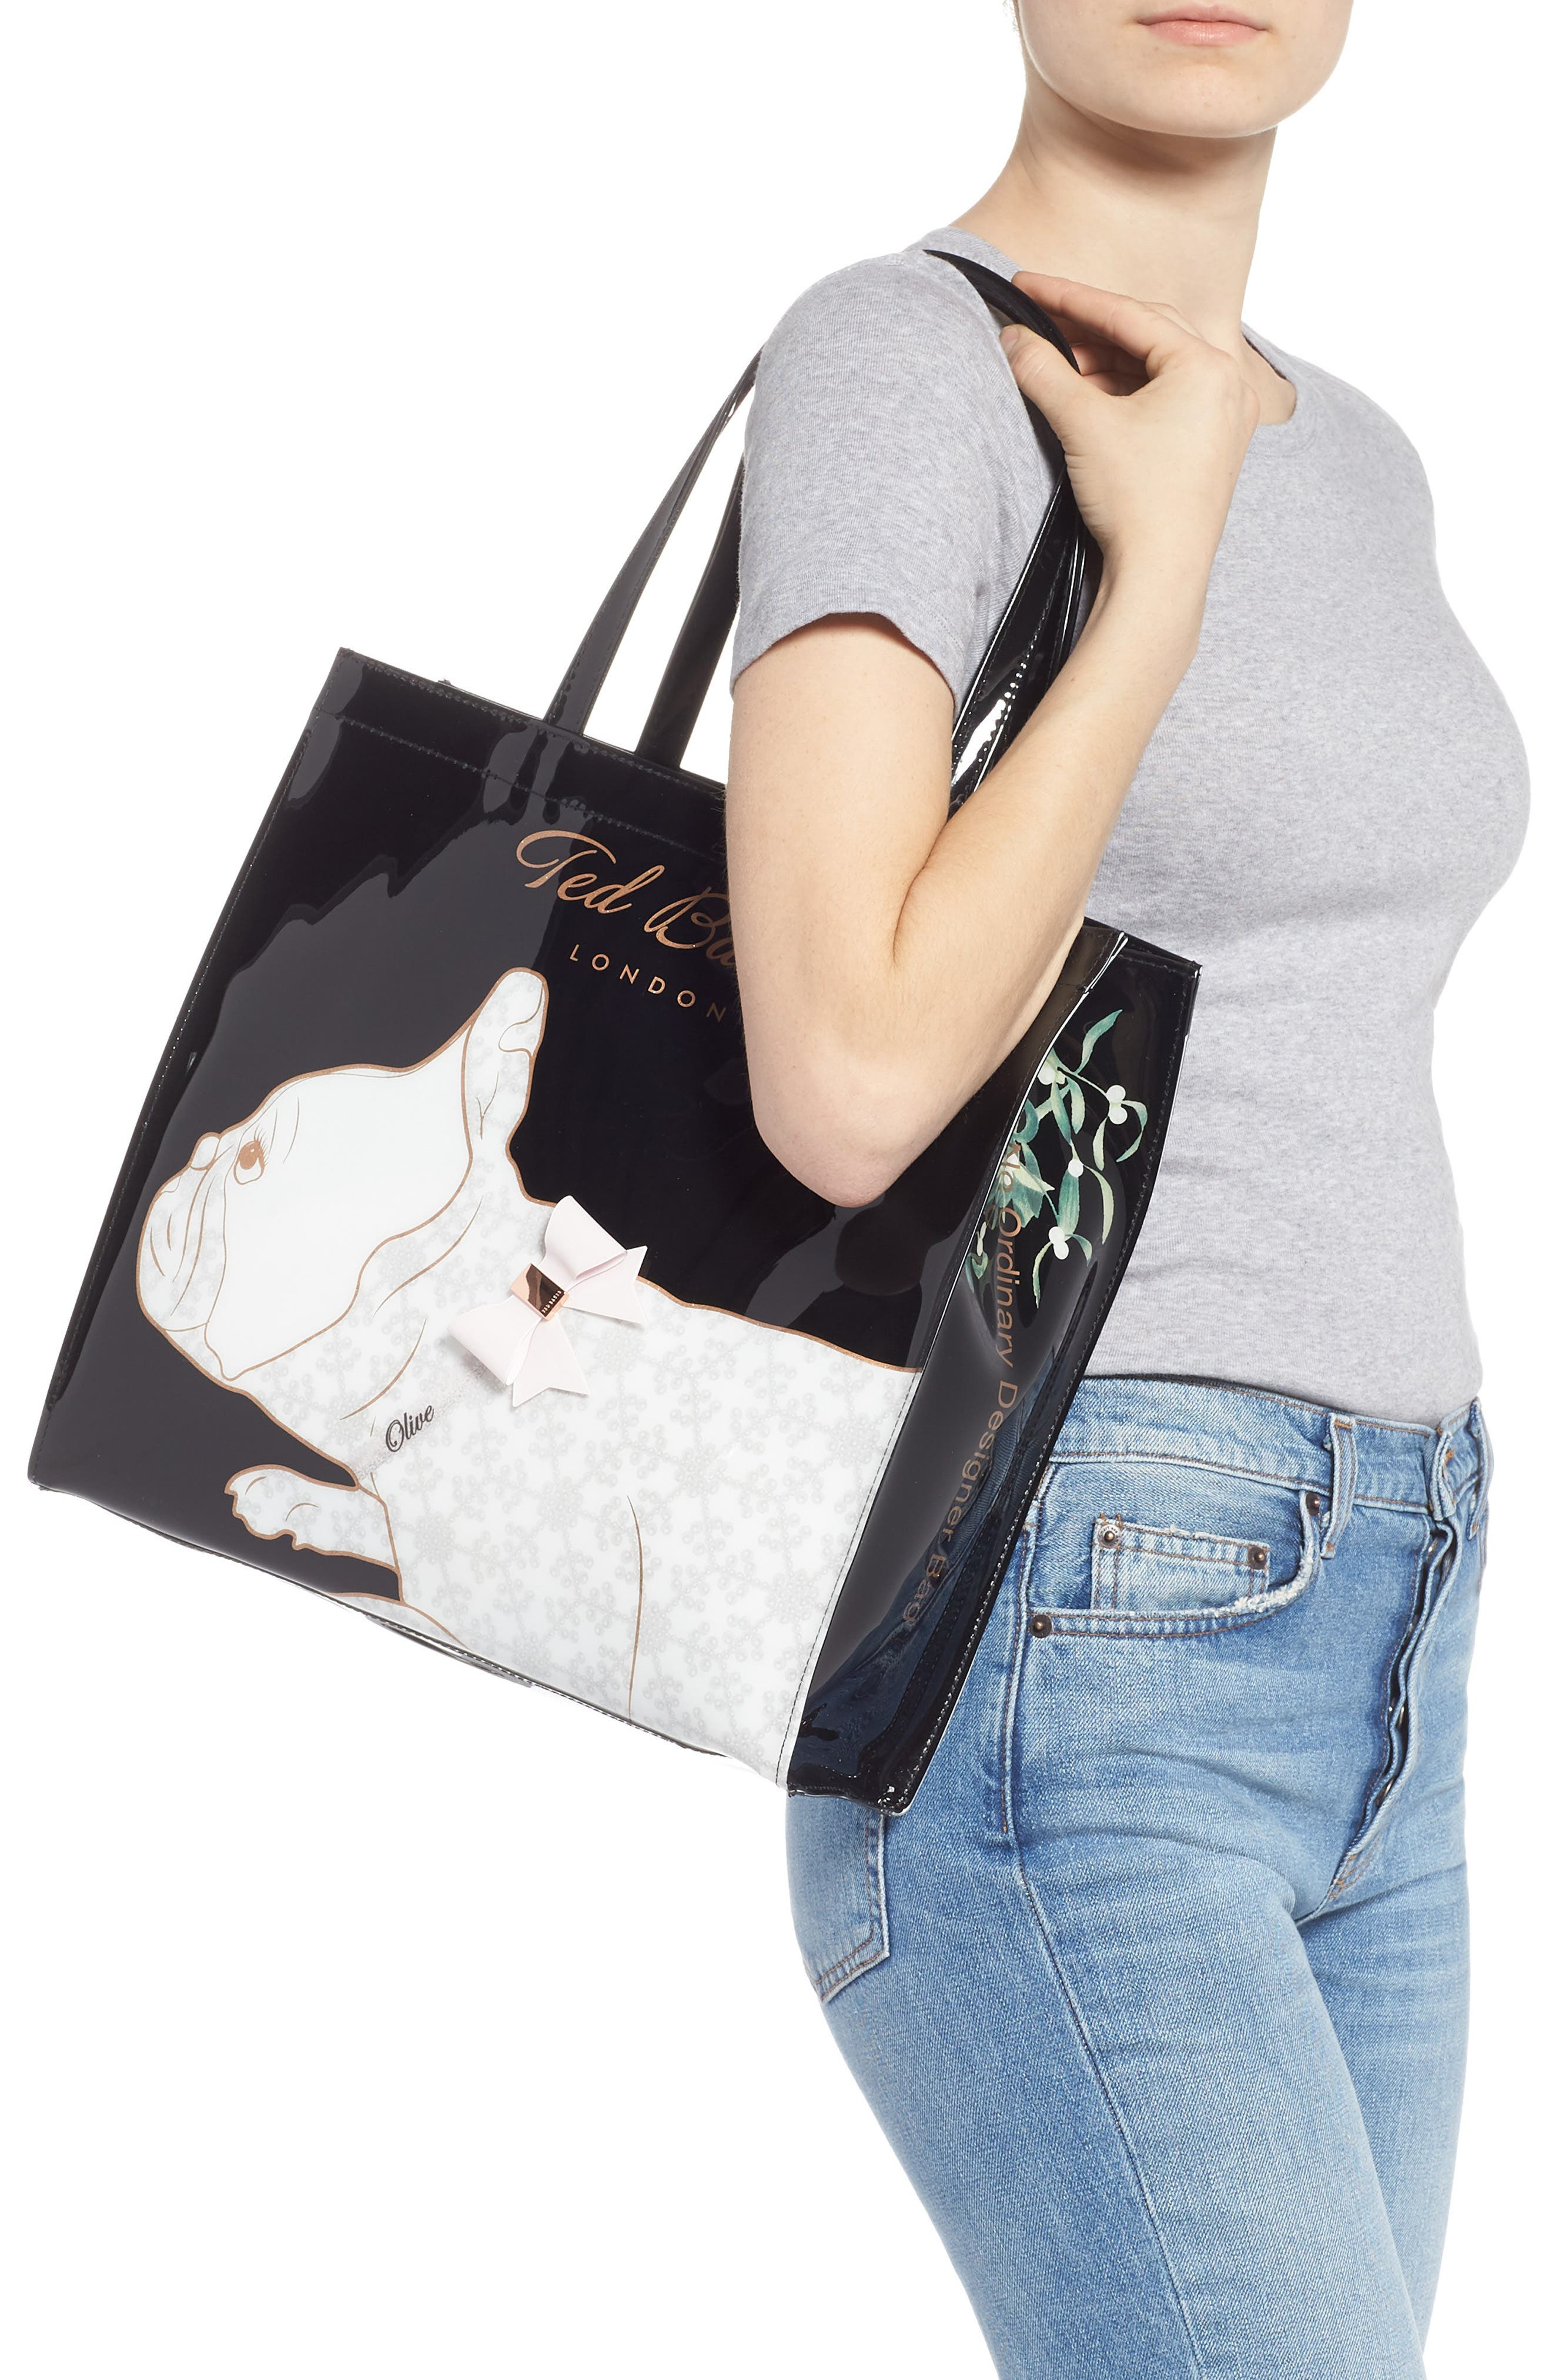 TED BAKER LONDON,                             Large Alyacon French Bulldog Icon Tote,                             Alternate thumbnail 2, color,                             001